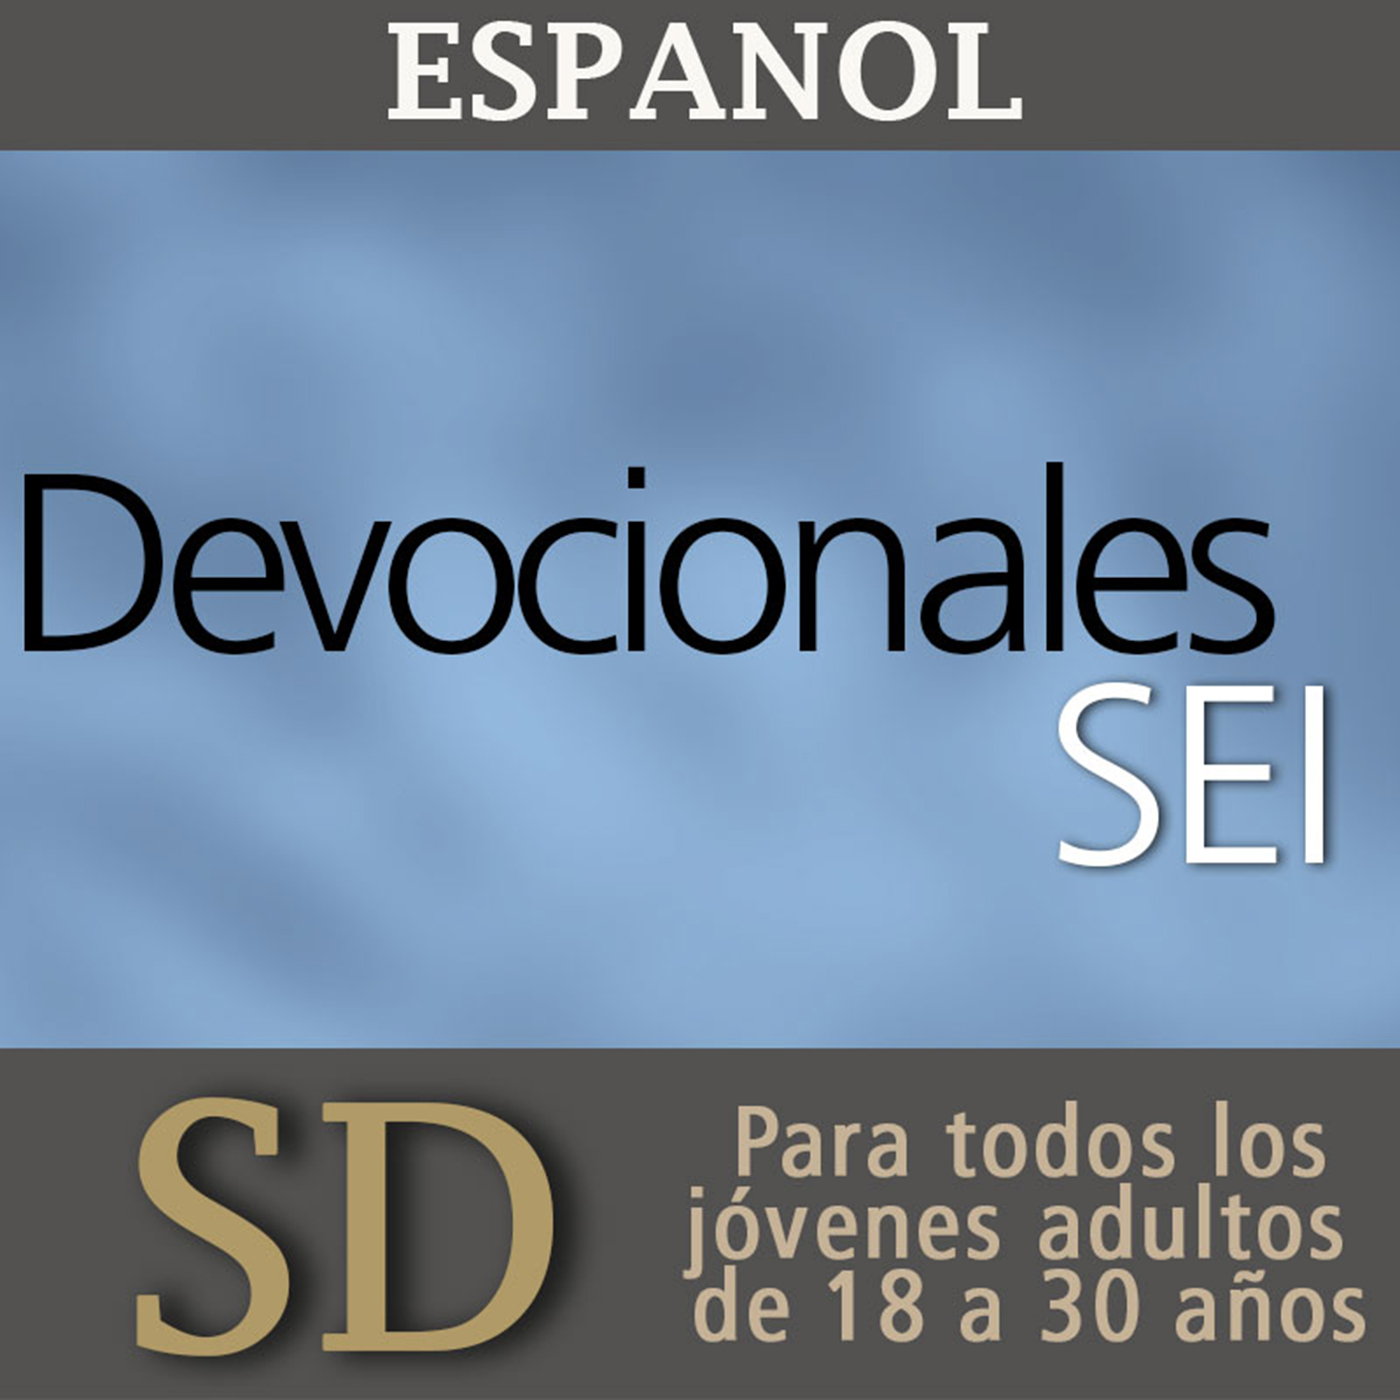 Worldwide Devotional For Young Adults | SD | SPANISH